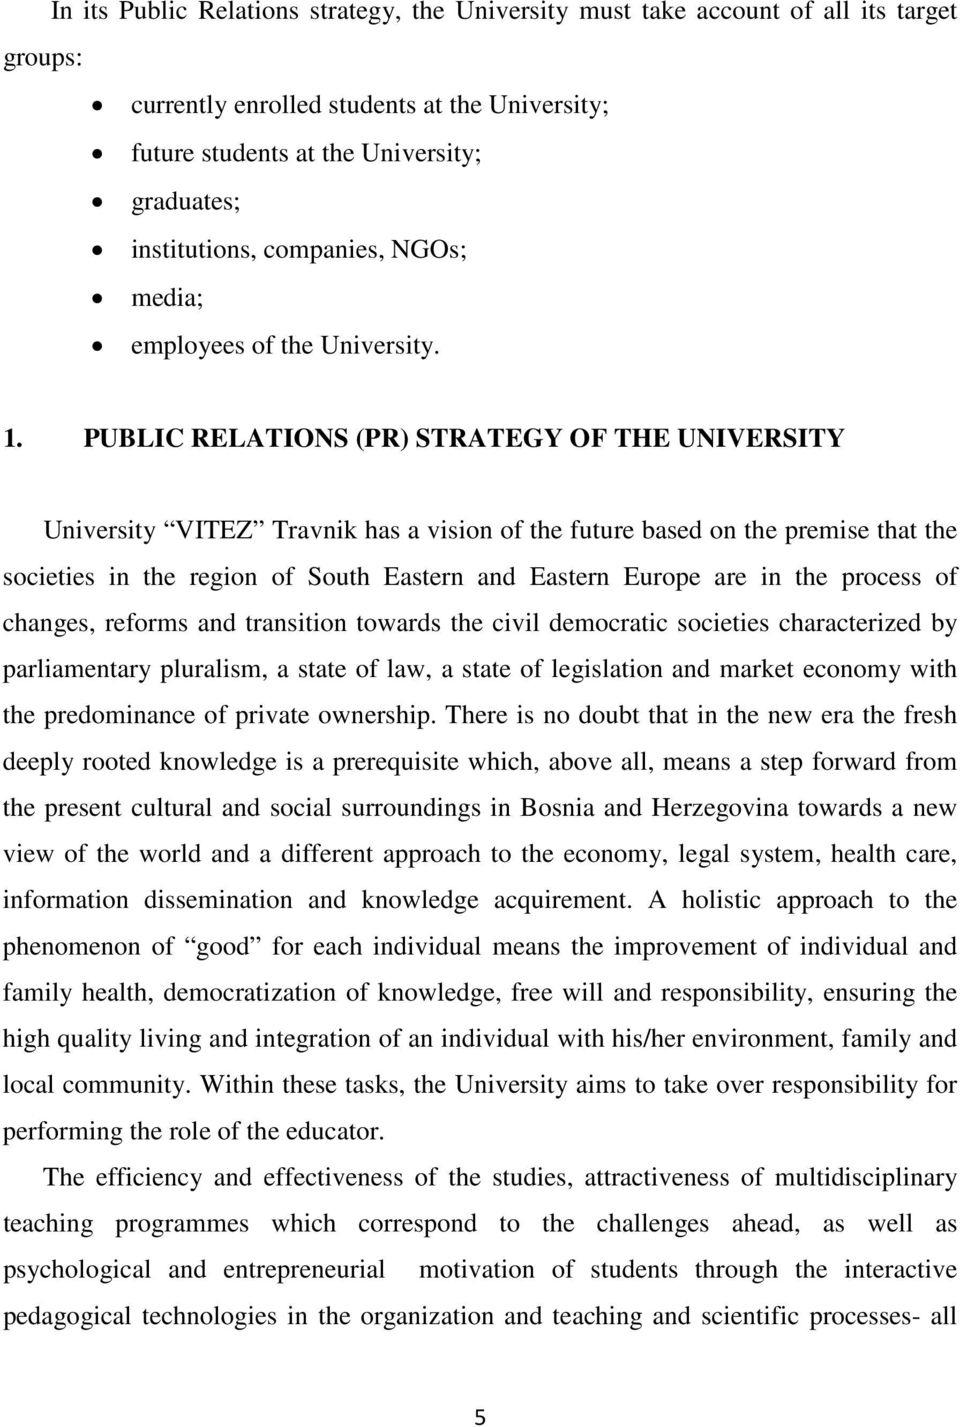 PUBLIC RELATIONS (PR) STRATEGY OF THE UNIVERSITY University VITEZ Travnik has a vision of the future based on the premise that the societies in the region of South Eastern and Eastern Europe are in